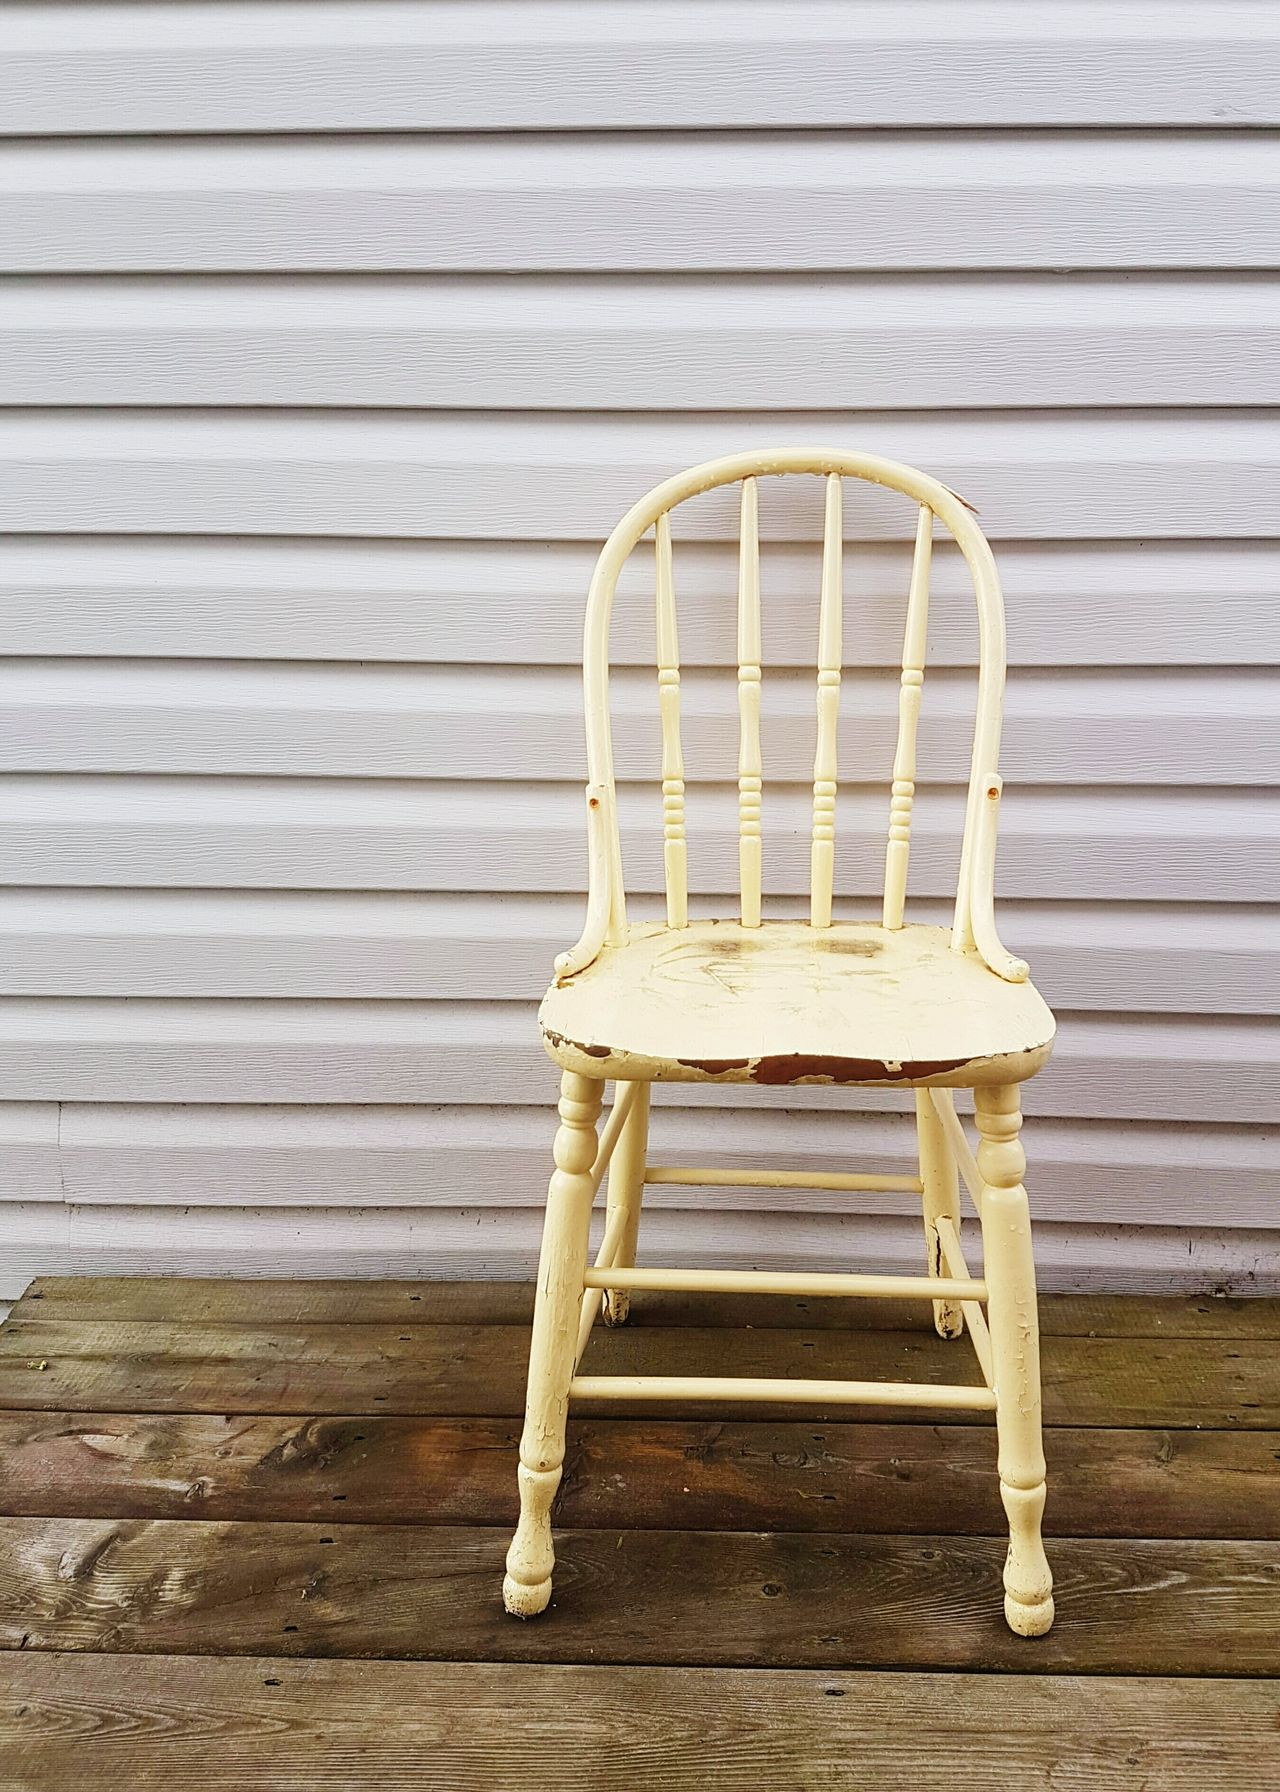 Inside Out... Interior Design meets Exterior Design Antique Kitchen Chair In My Garden Wood Floor Deck Siding Chair Pale Yellow Wood Chair Negative Space Lines Simple Things In Life Simplicity Minimal Pull Up A Chair Have A Seat Photographic Memory Lieblingsteil